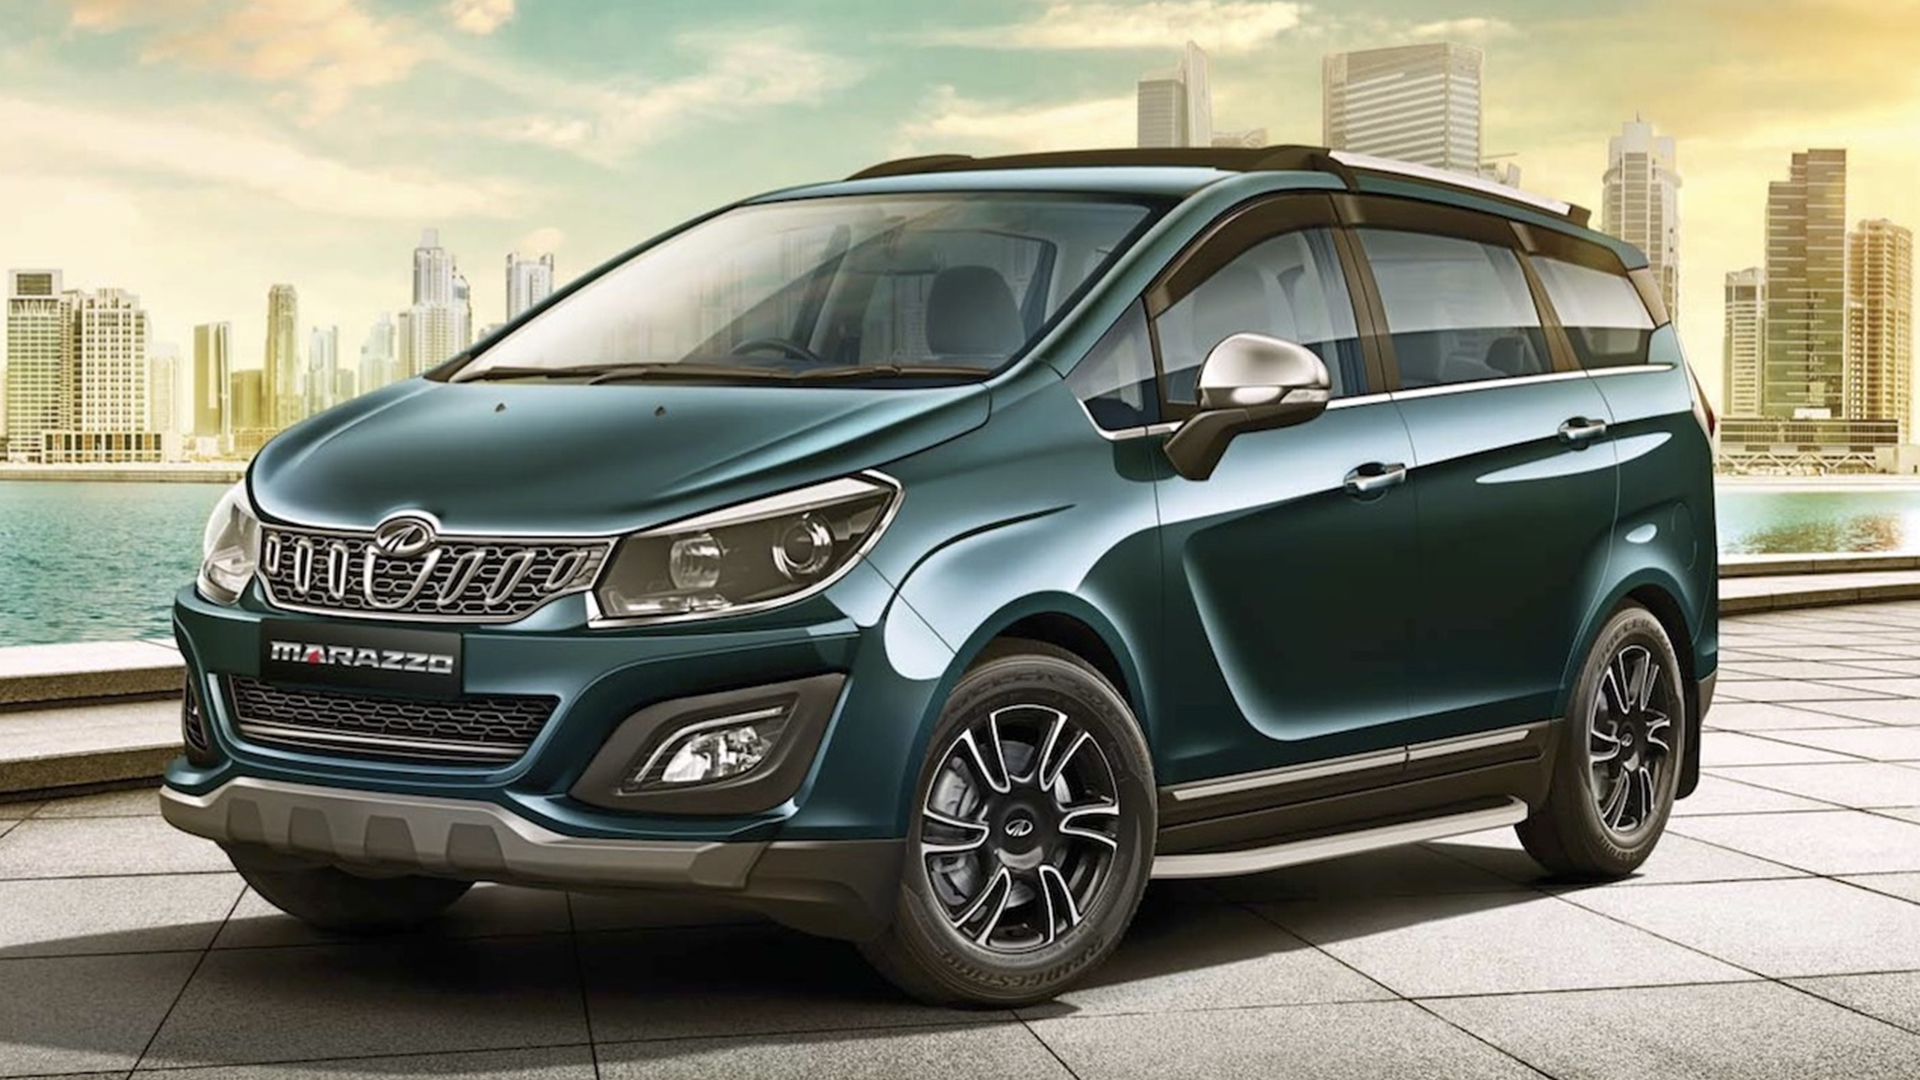 Mahindra Marazzo Review: What No One Tells You About